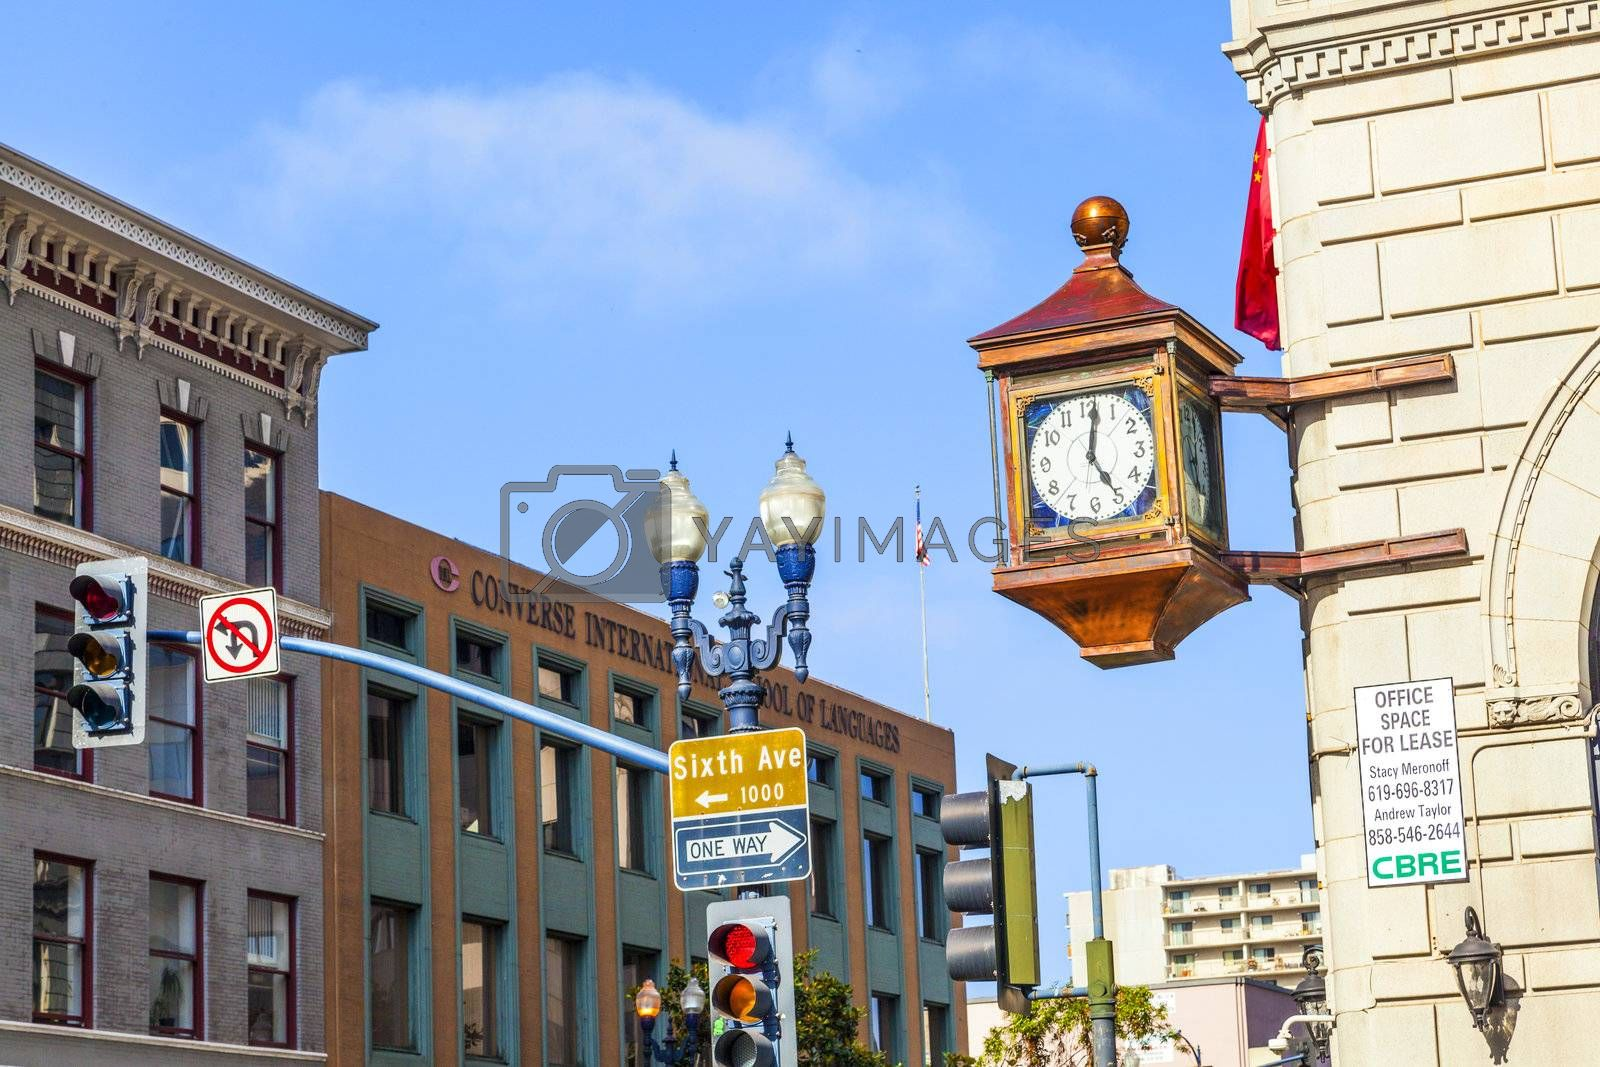 SAN DIEGO, USA - JUNE 11: facade with old clock in the gaslamp quarter on June 11, 2012 in San Diego, USA. The area is a historic district on the National Register of Historic Places and dates back to 1867.